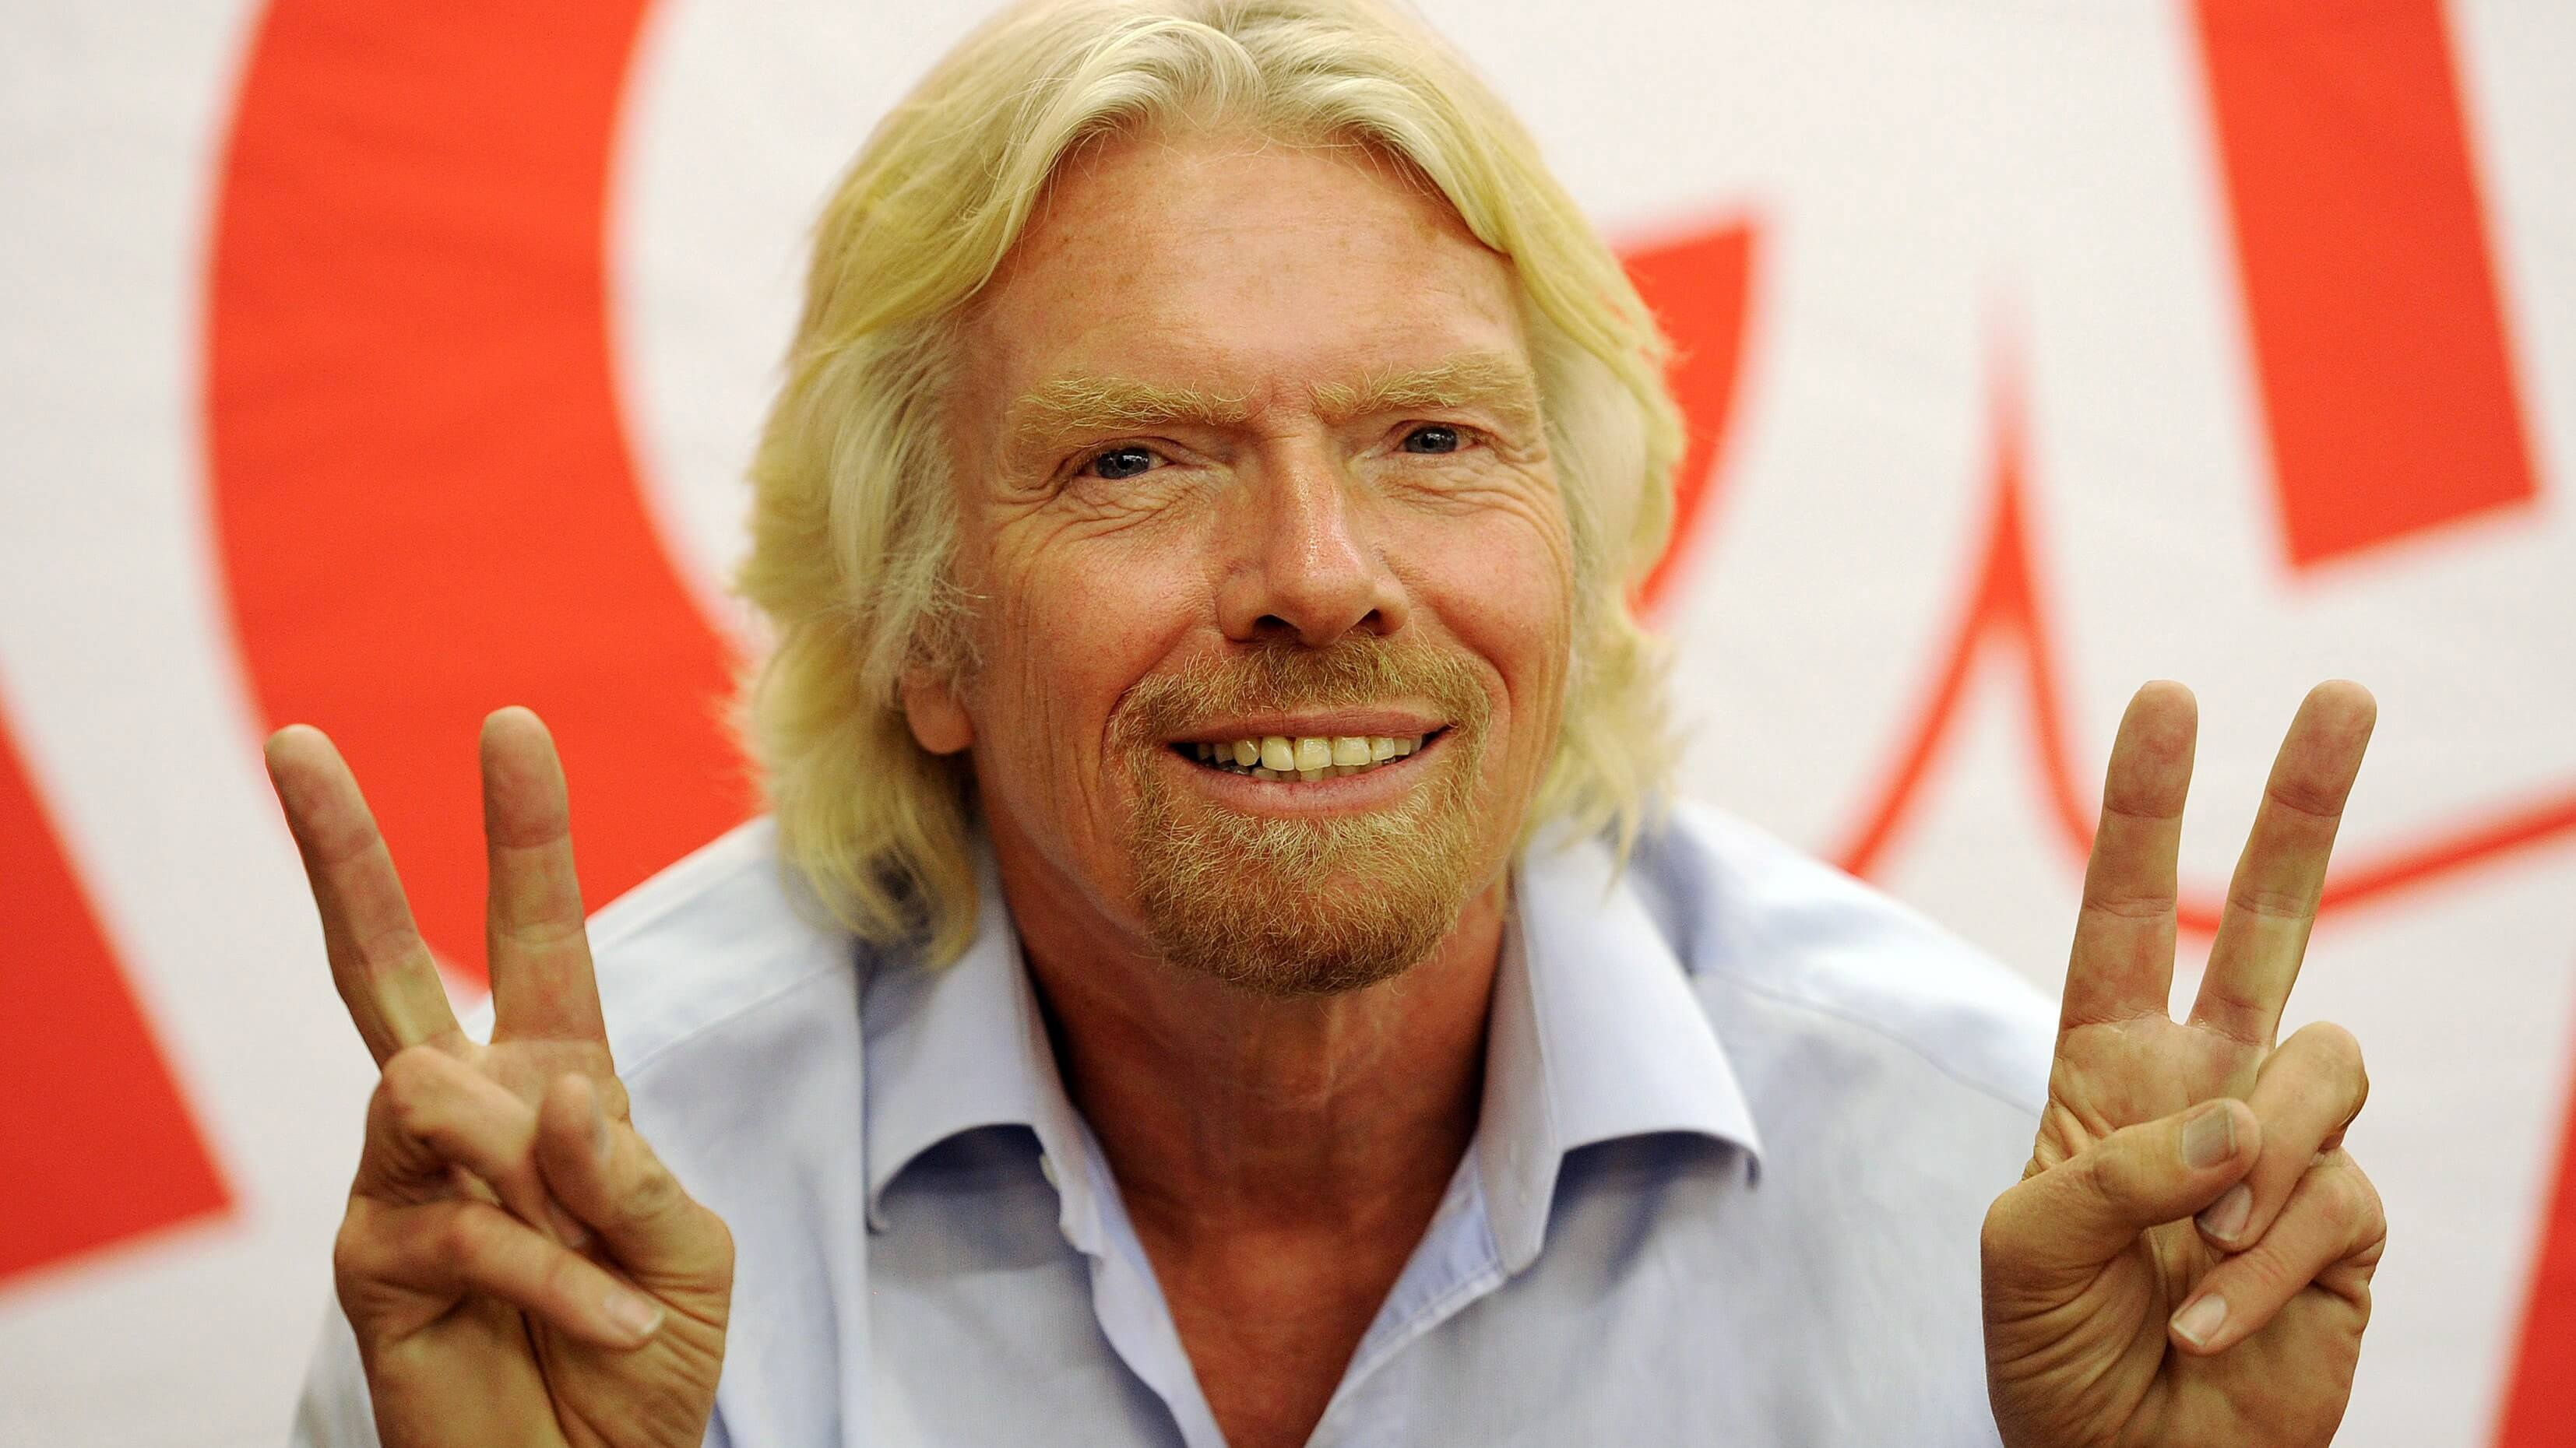 This Is Why Richard Branson Wants Dairy Farmers to Grow Weed